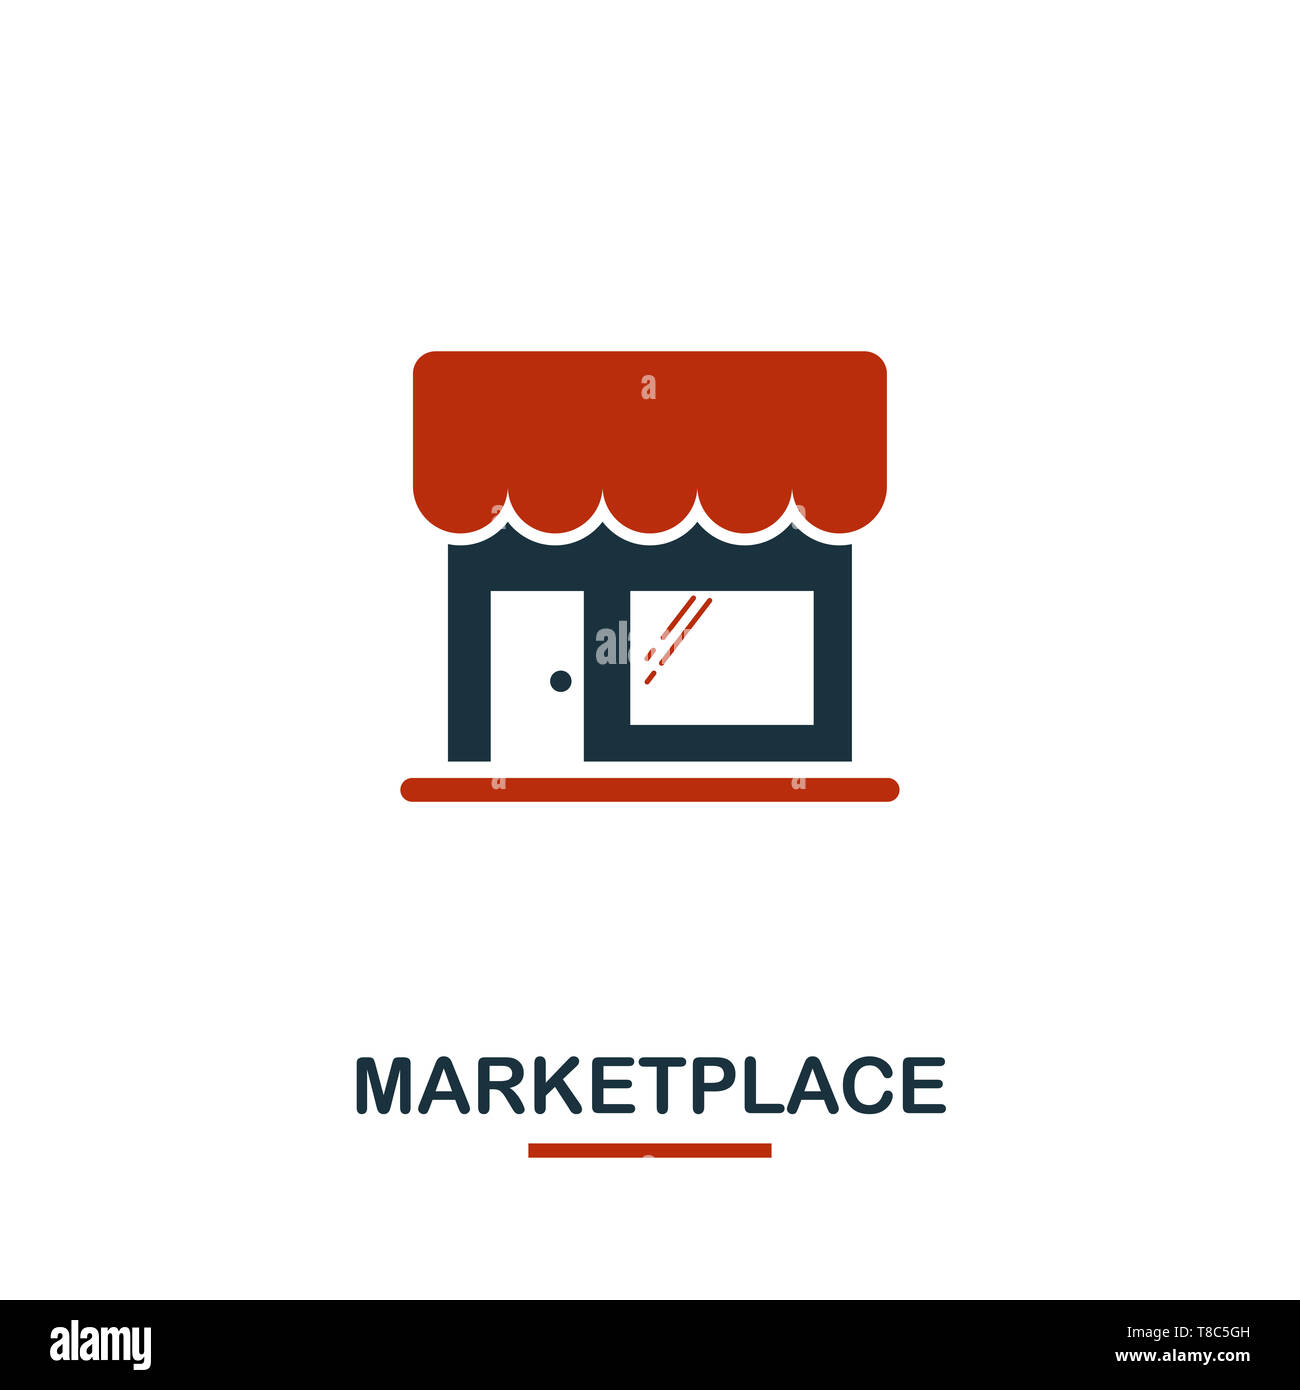 Marketplace icon in two colors. Creative black and red design from e-commerce icons collection. Pixel perfect simple marketplace icon for web design,  Stock Photo